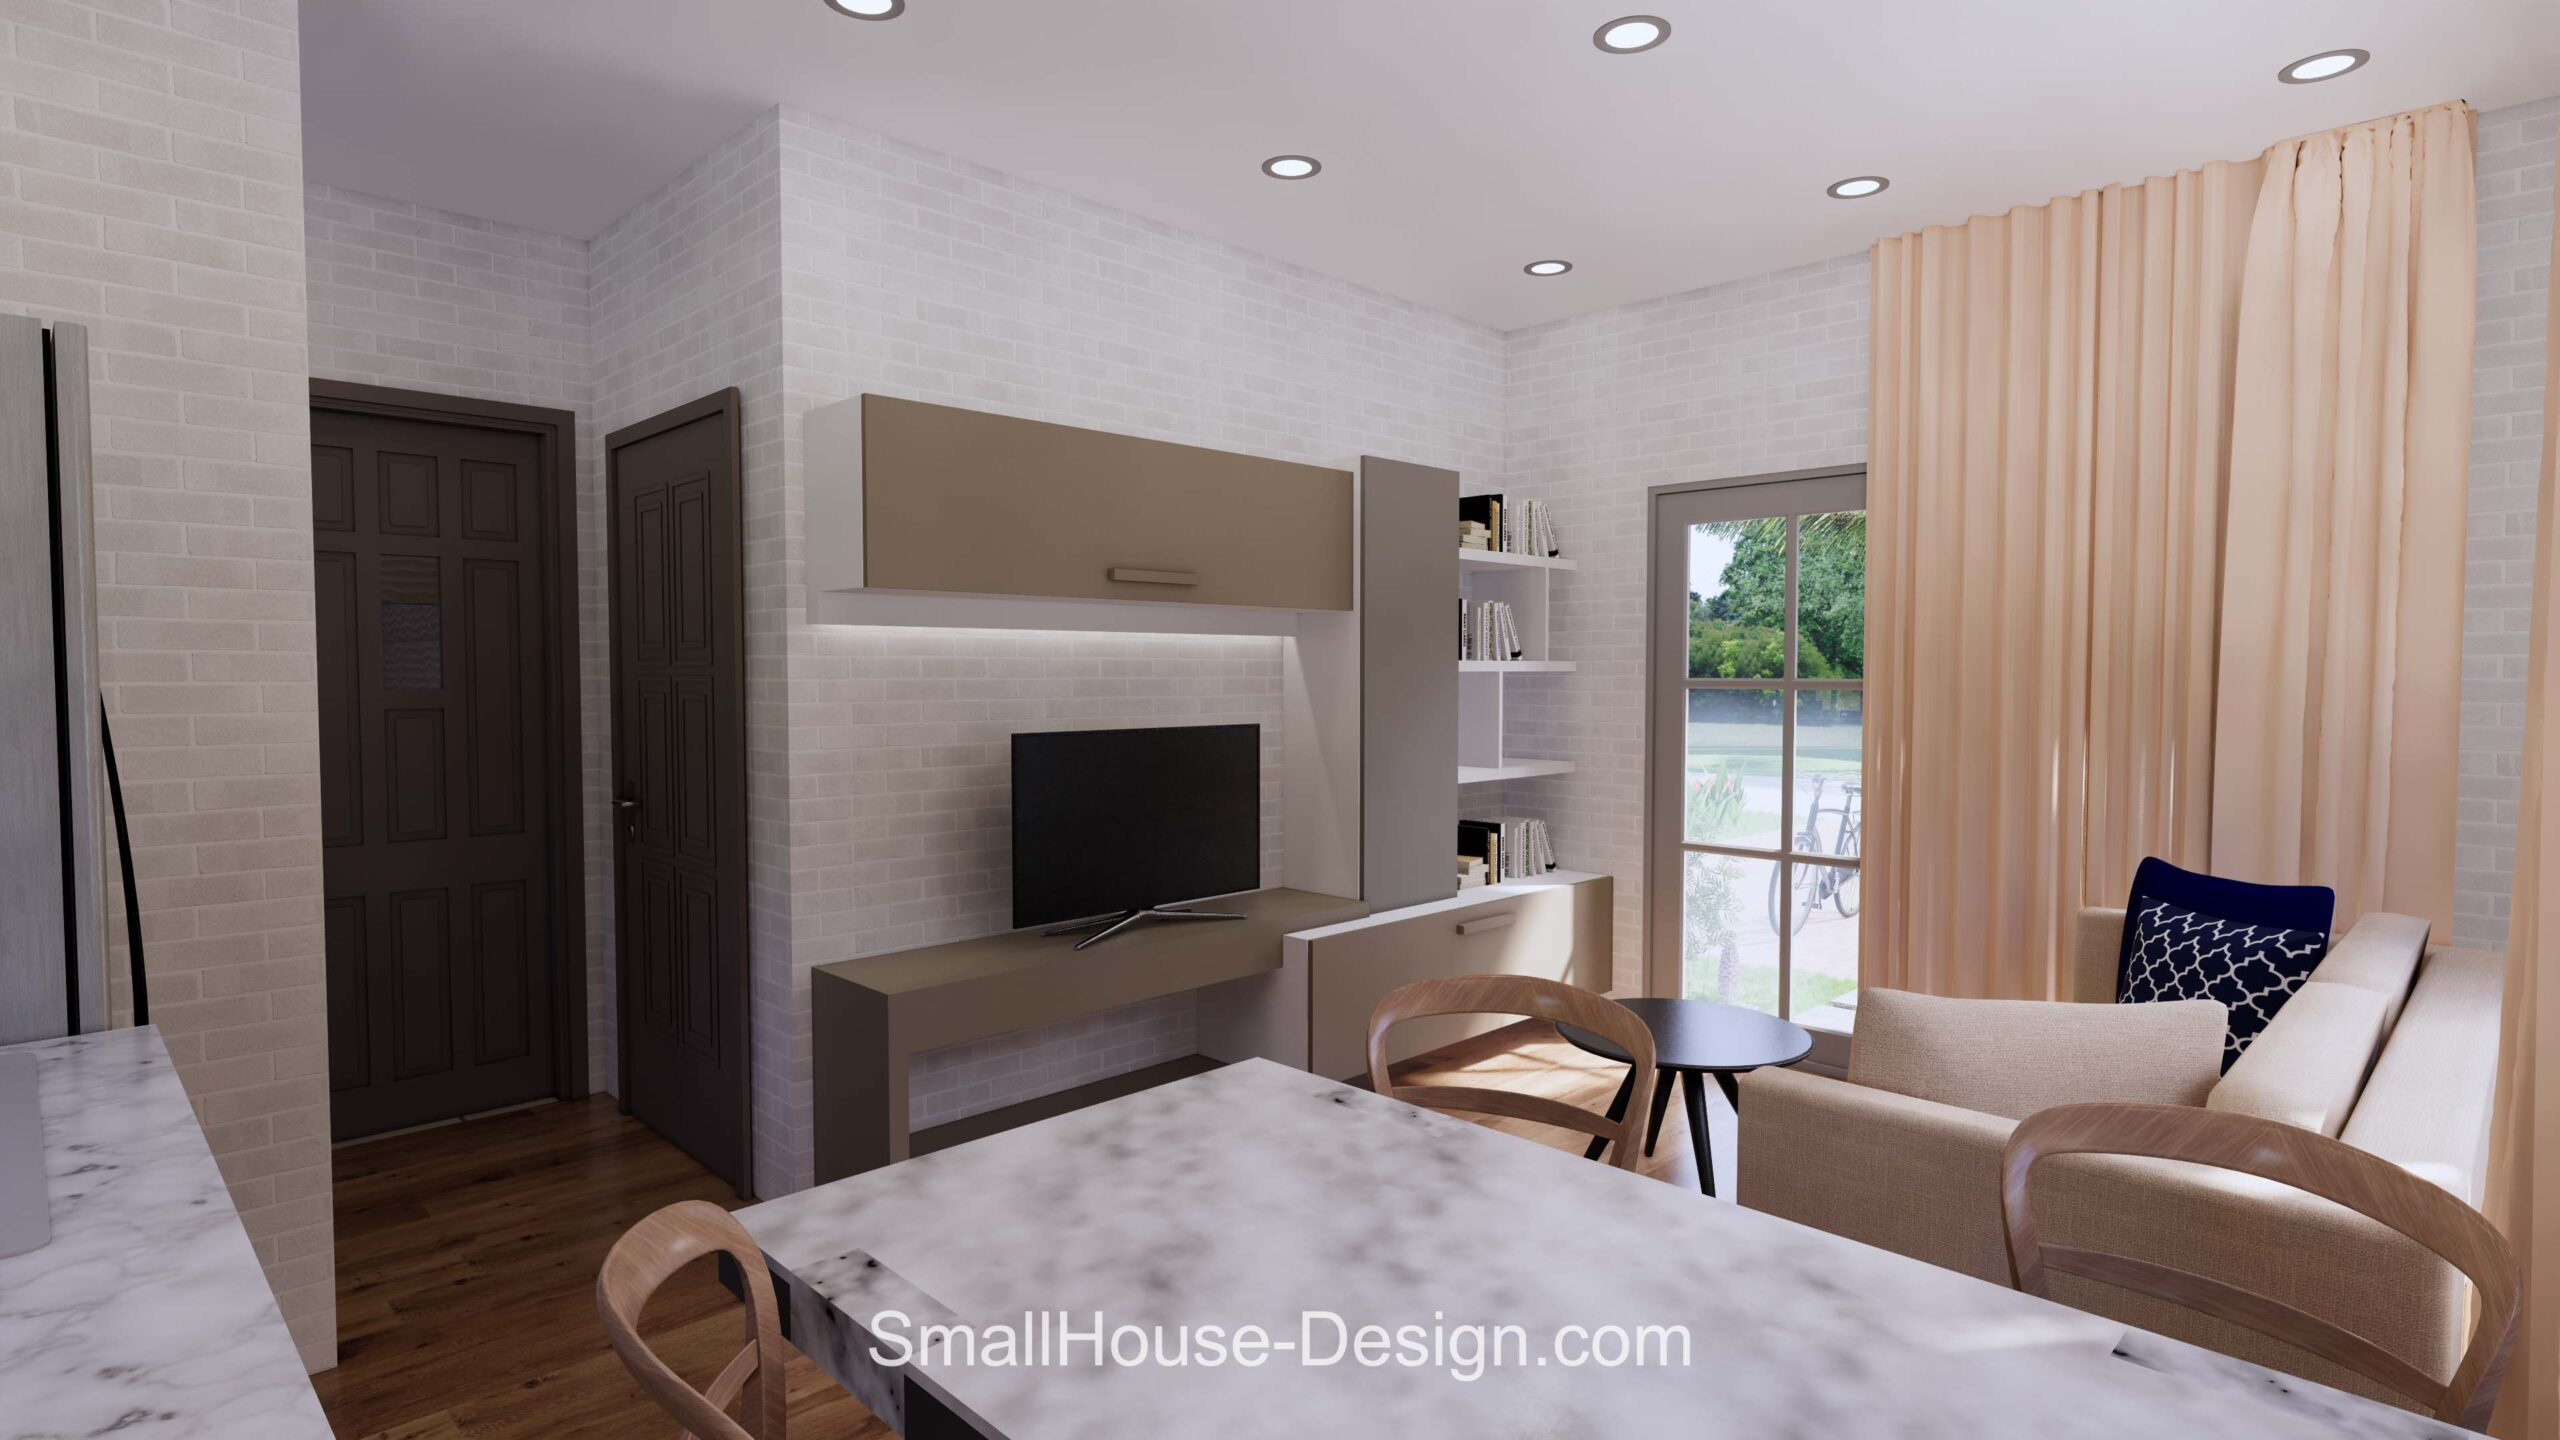 Small House Plan 7x6 Meters 1 Bed Hip Roof Living room 4